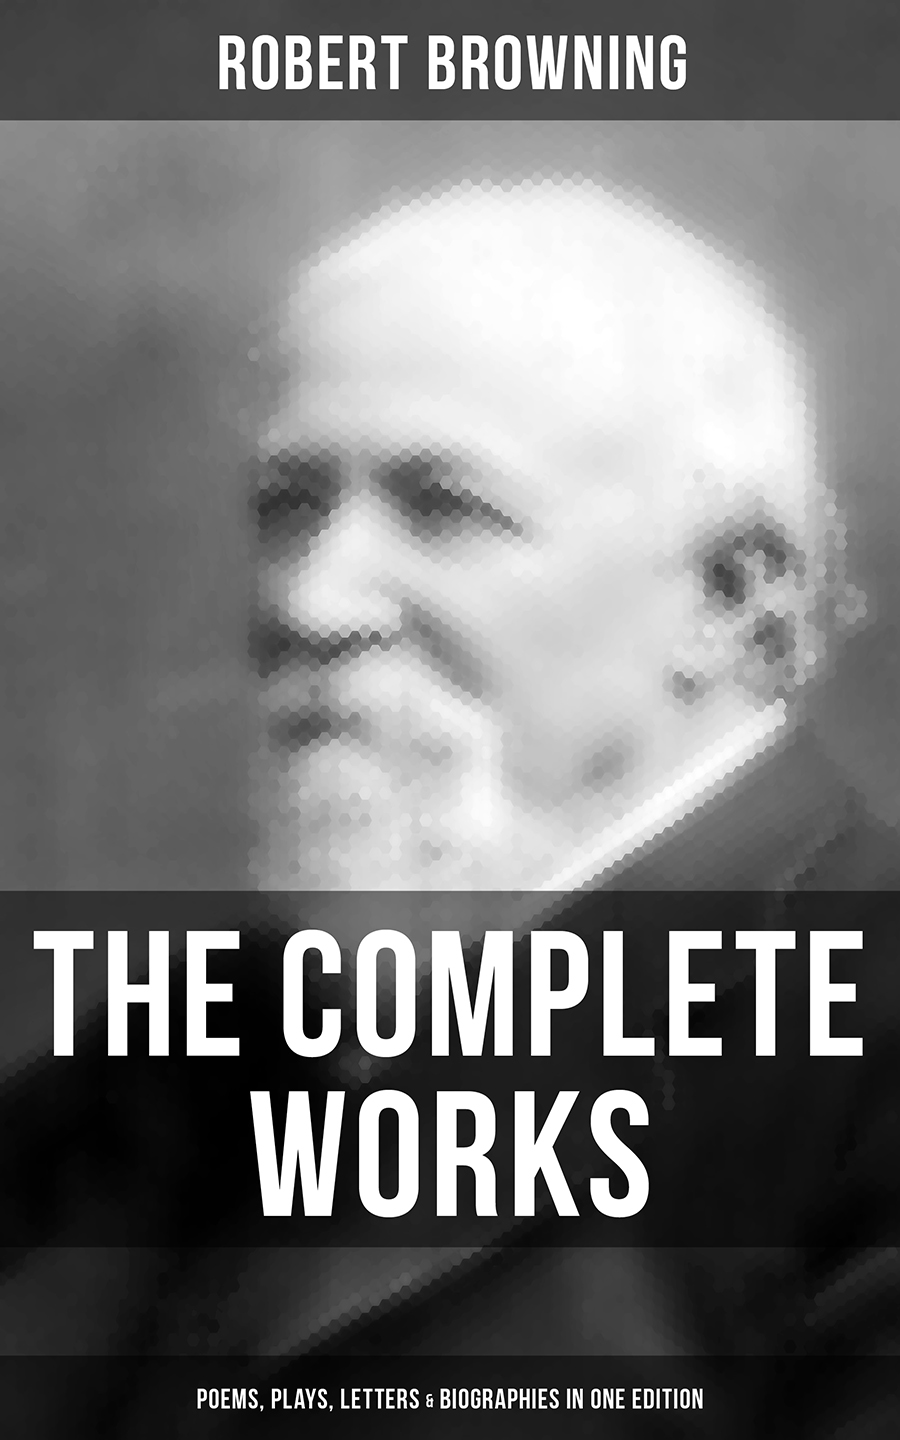 Robert Browning The Complete Works of Robert Browning: Poems, Plays, Letters & Biographies in One Edition browning lm339 d 5 20 kb20